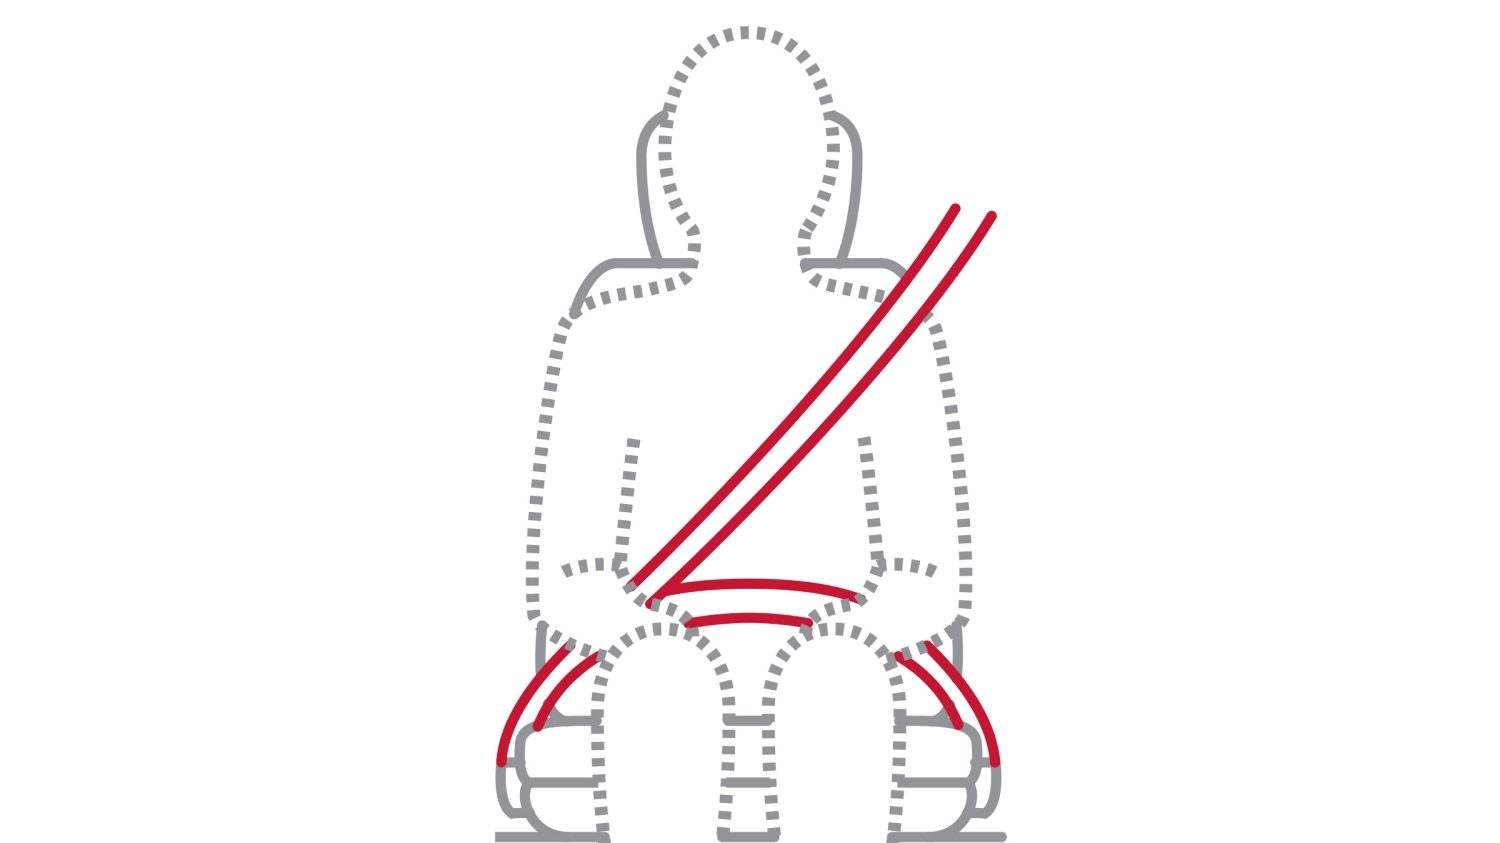 Nissan GT-R seat belt pretensioner illustration